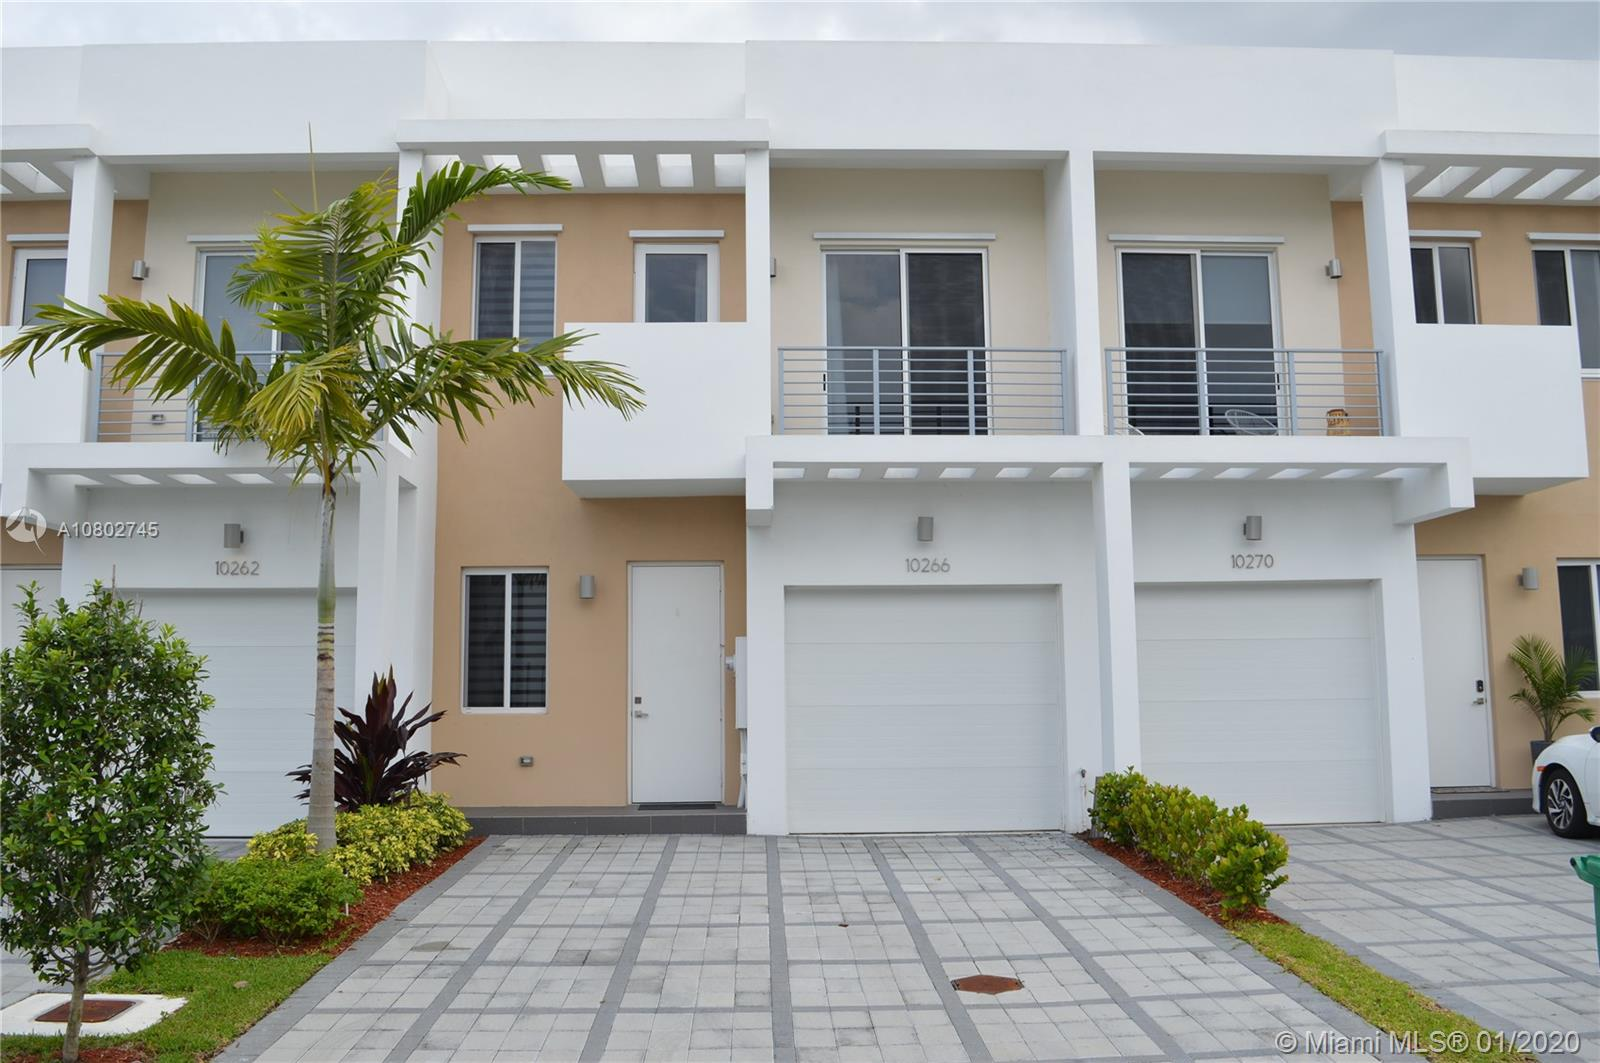 10266 NW 72nd Ter #10266 For Sale A10802745, FL